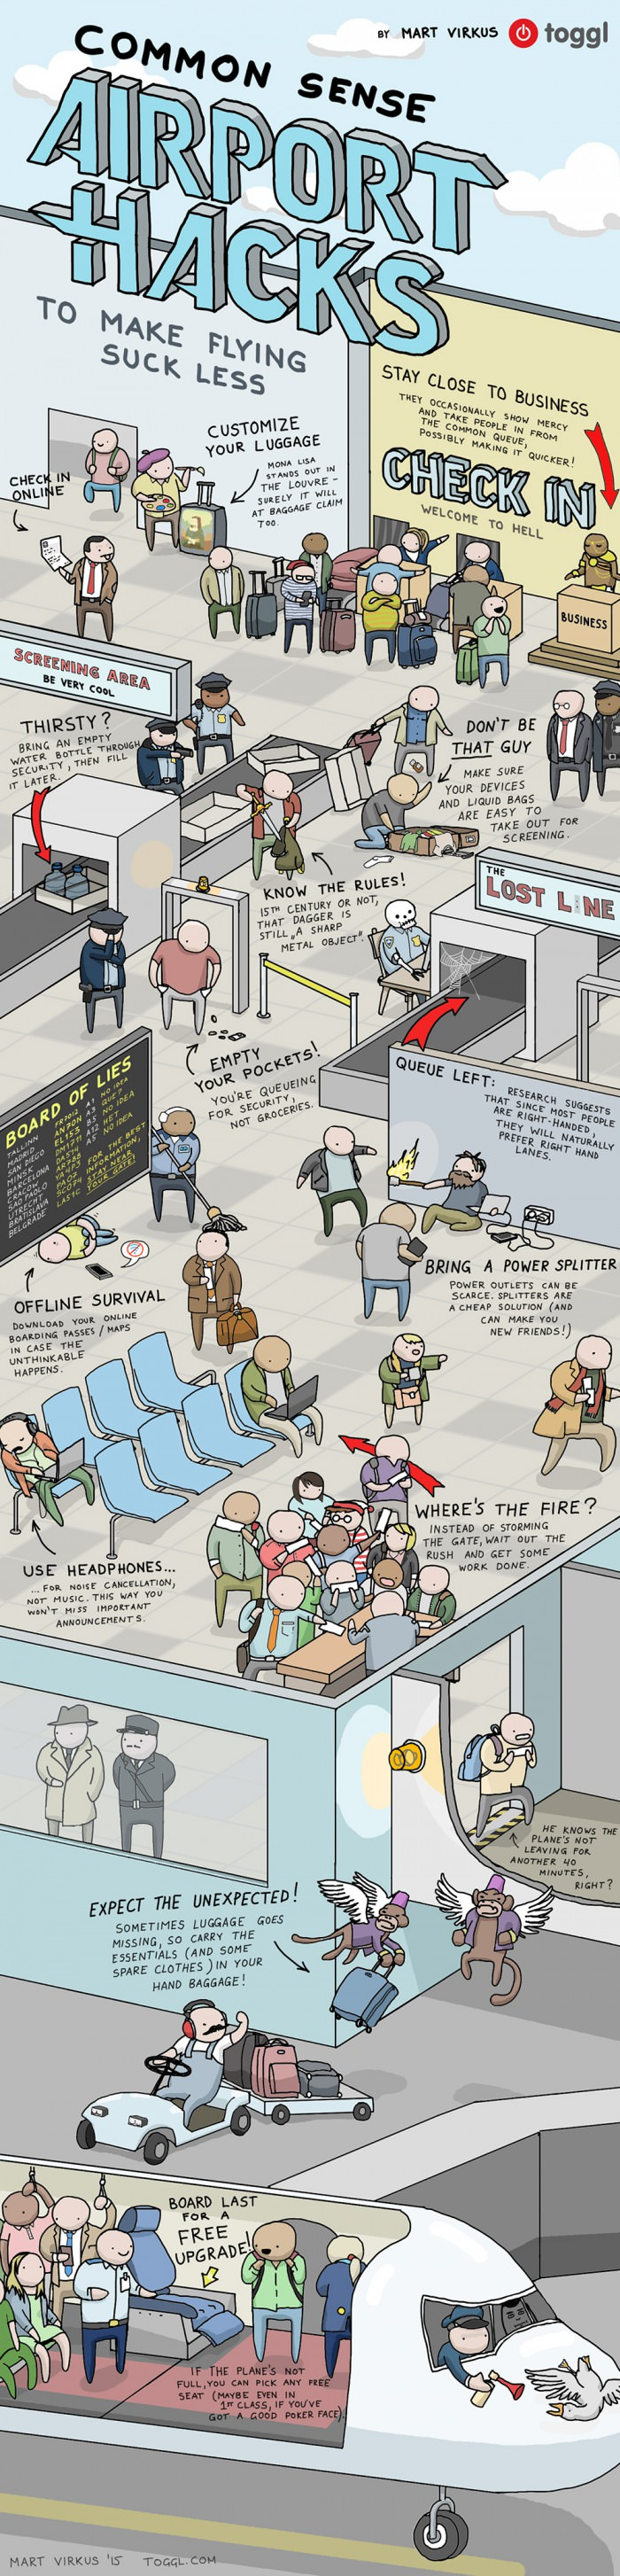 Airport Hacks That Make Flying A Lot More Fun